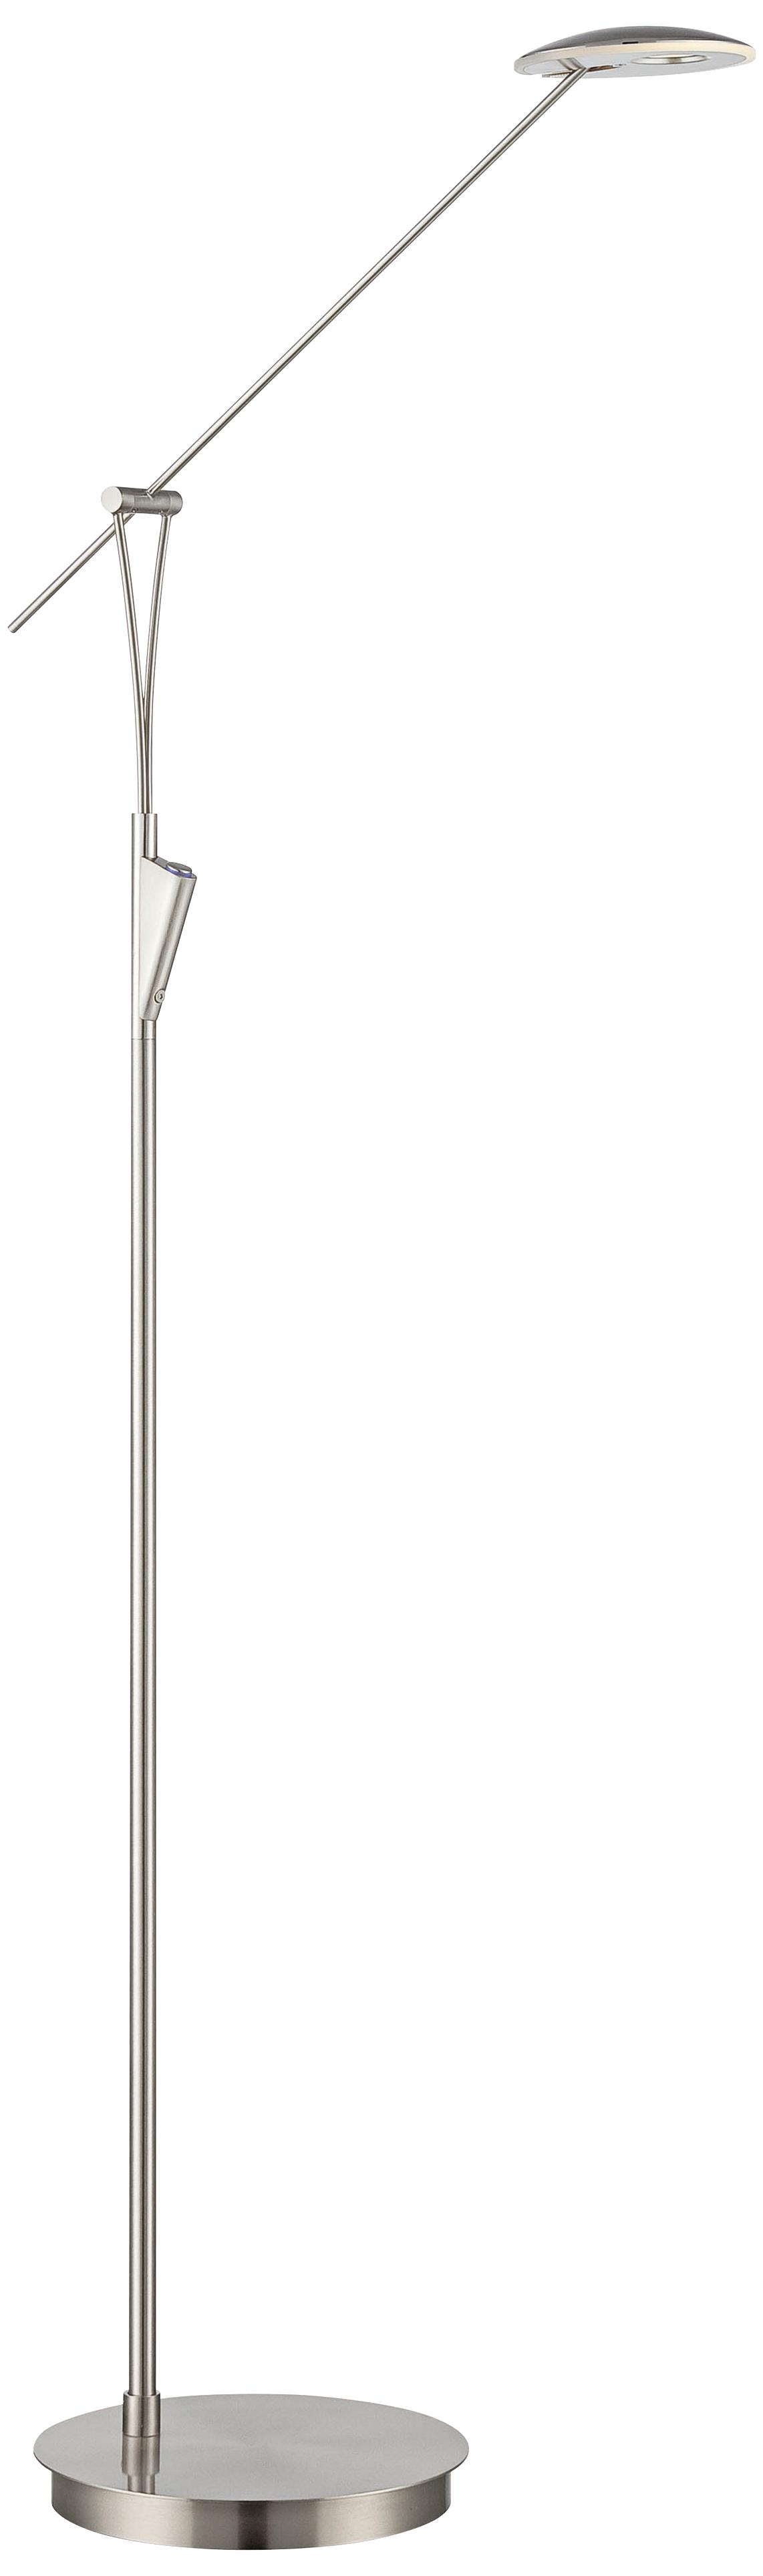 Lite Source Kamana Satin Chrome LED Floor Lamp (5P417)